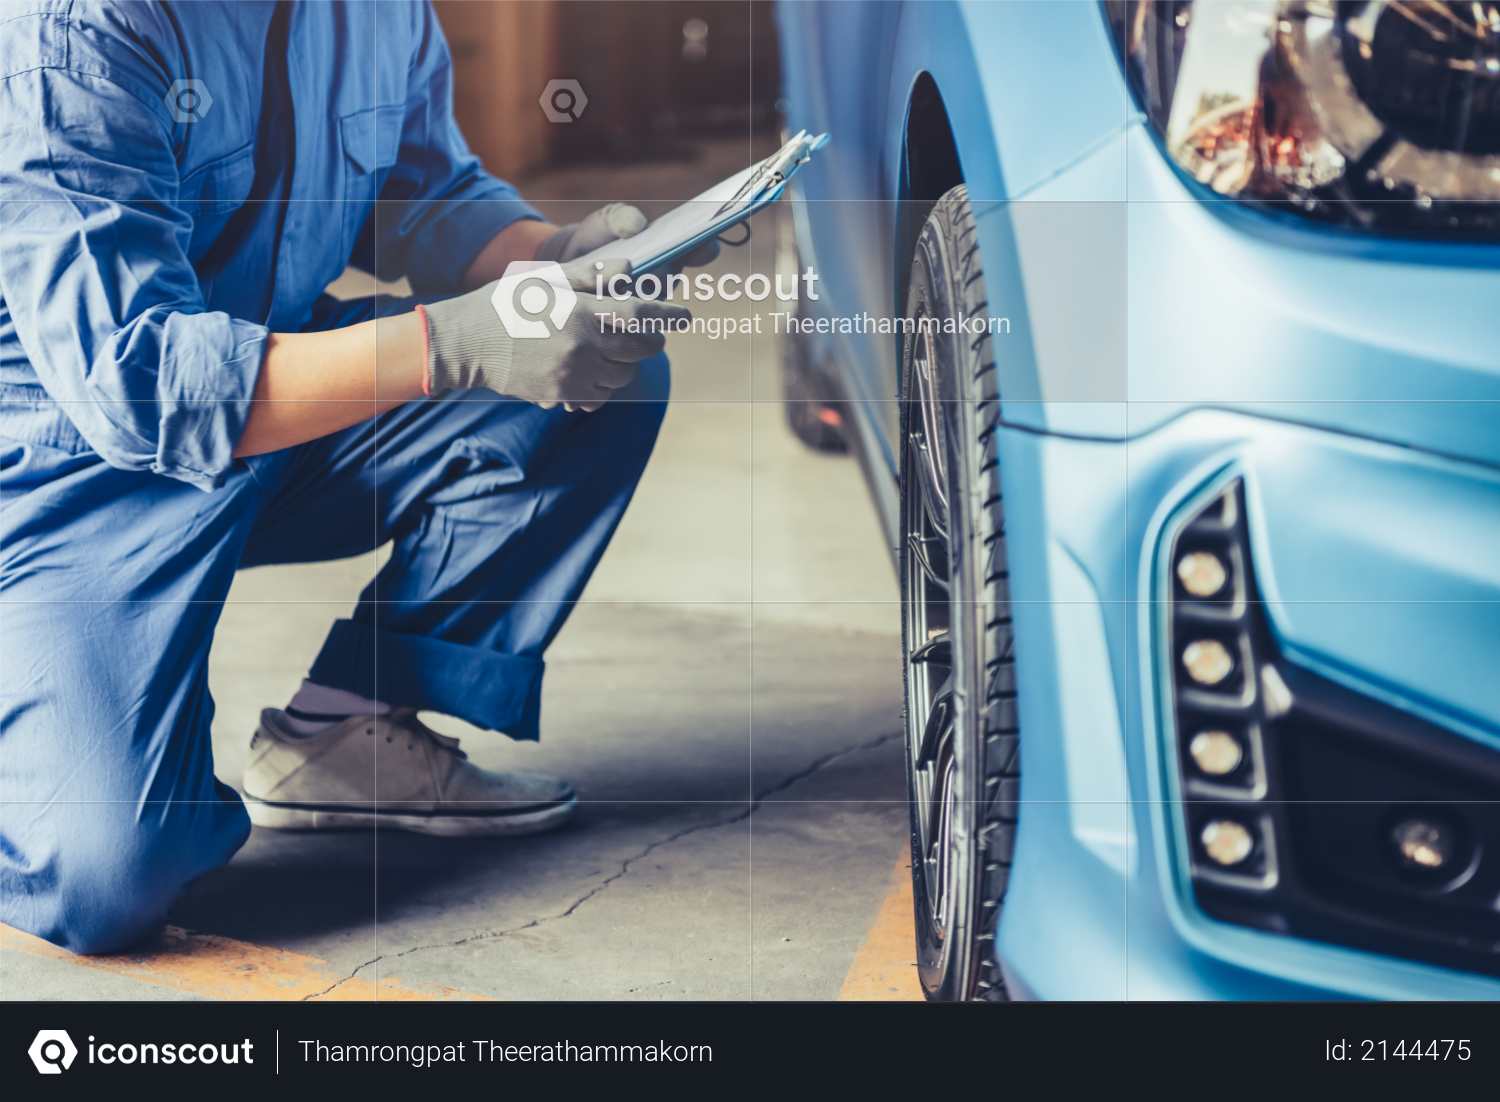 Asian car mechanic technician holding clipboard and checking to maintenance vehicle by customer claim order in auto repair shop garage, Wheel tire repair service, People occupation and business job Photo